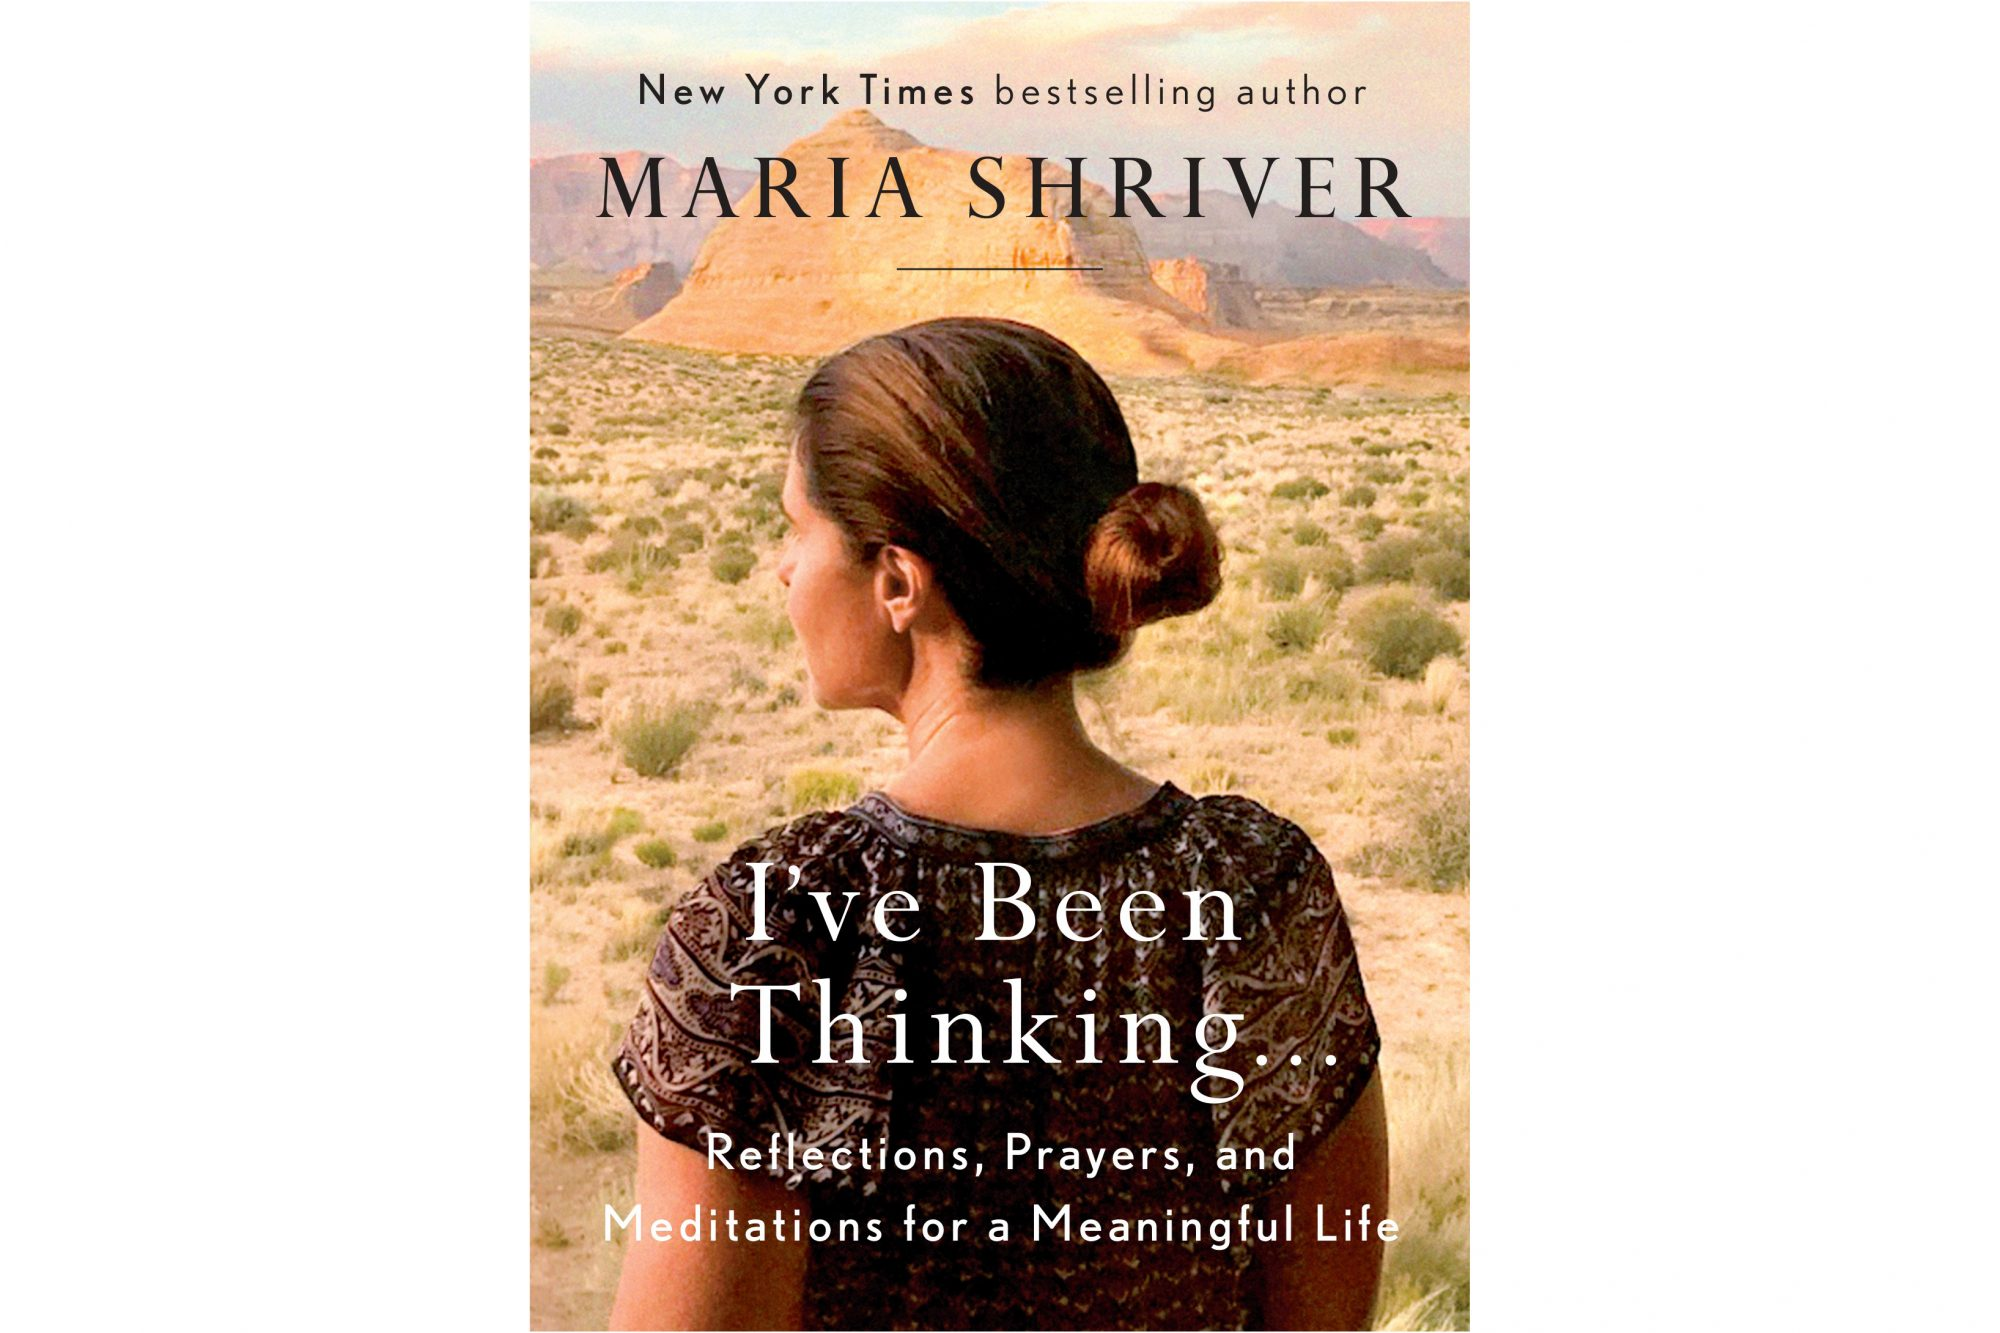 I've Been Thinking, by Maria Shriver